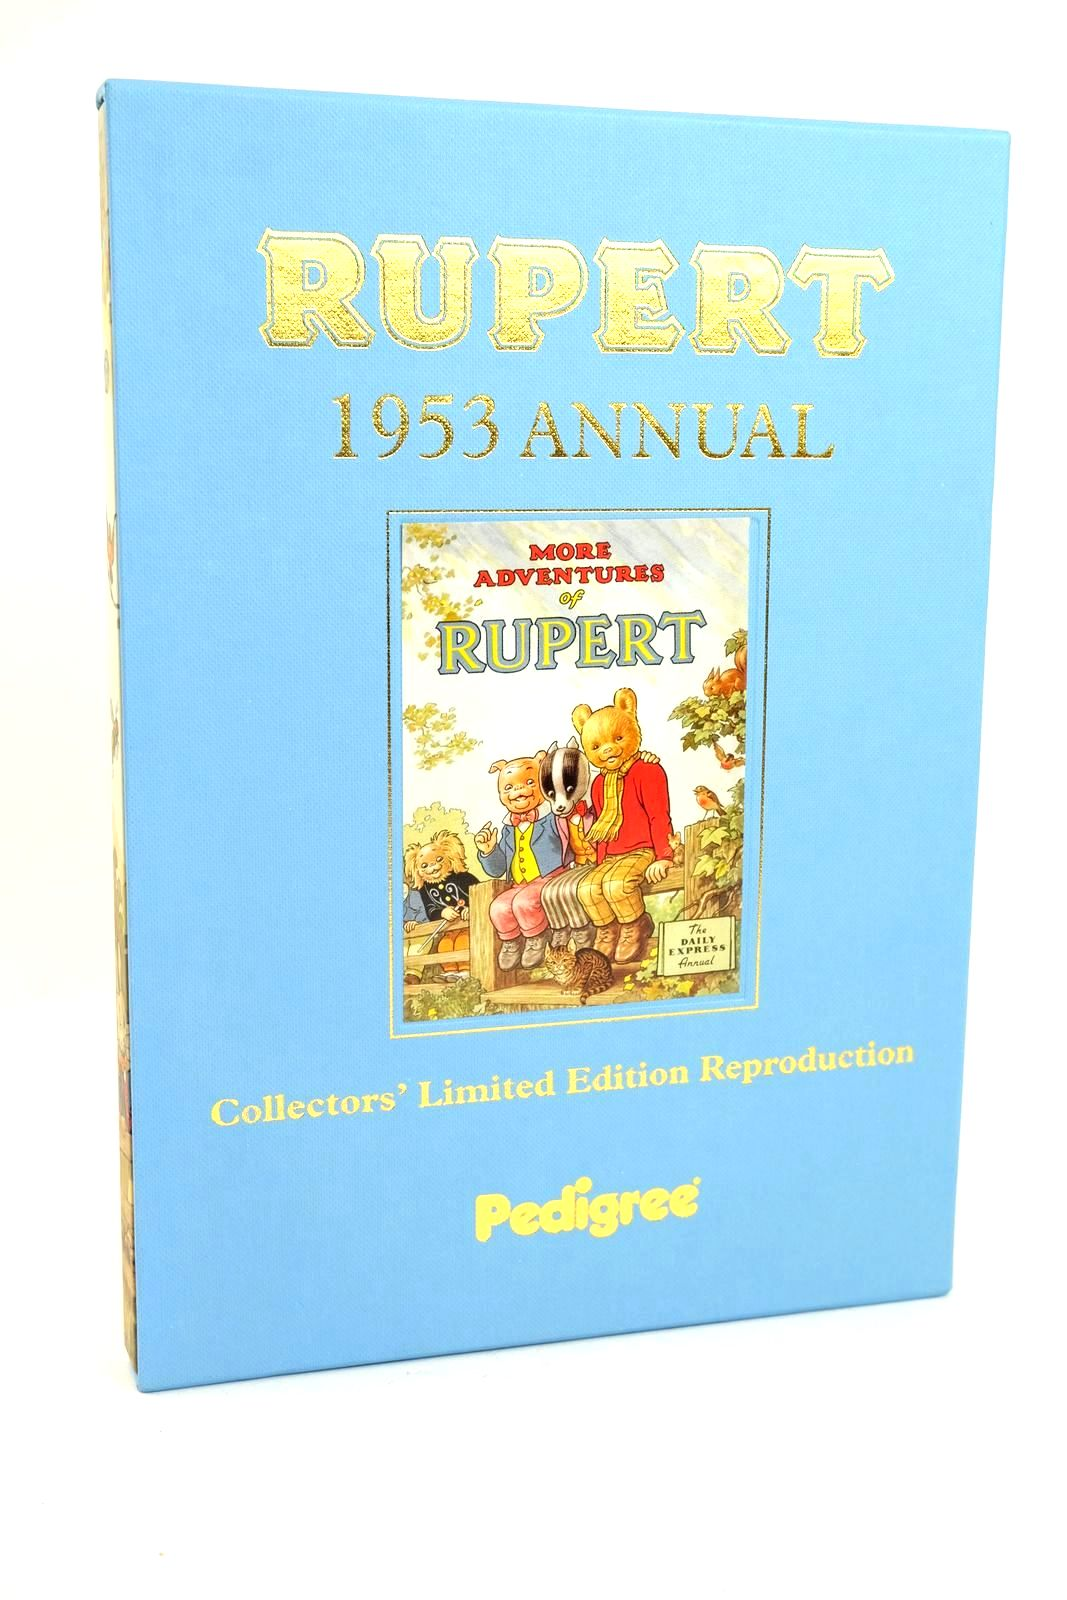 Photo of RUPERT ANNUAL 1953 (FACSIMILE) - MORE ADVENTURES OF RUPERT written by Bestall, Alfred illustrated by Bestall, Alfred published by Pedigree Books Limited (STOCK CODE: 1318643)  for sale by Stella & Rose's Books